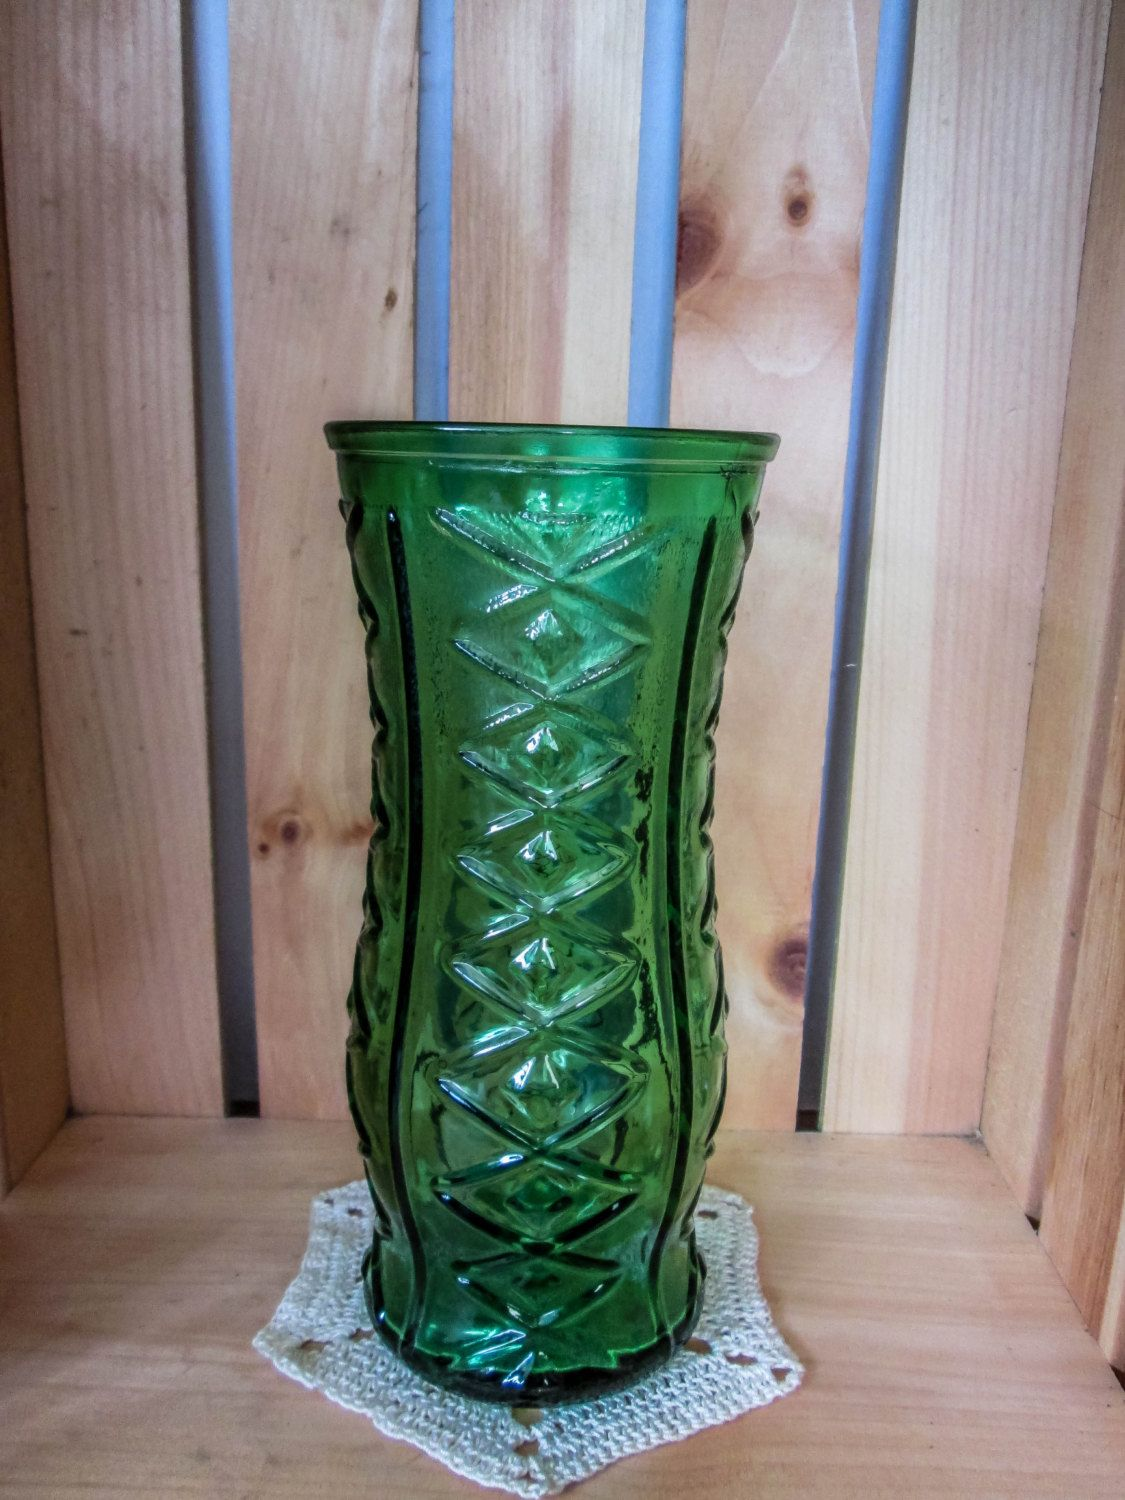 Vintage eo brody green vase diamond pattern large eo brody vintage eo brody green vase diamond pattern large eo brody vase green decor large vase table decor shabby chic wedding birthday reviewsmspy